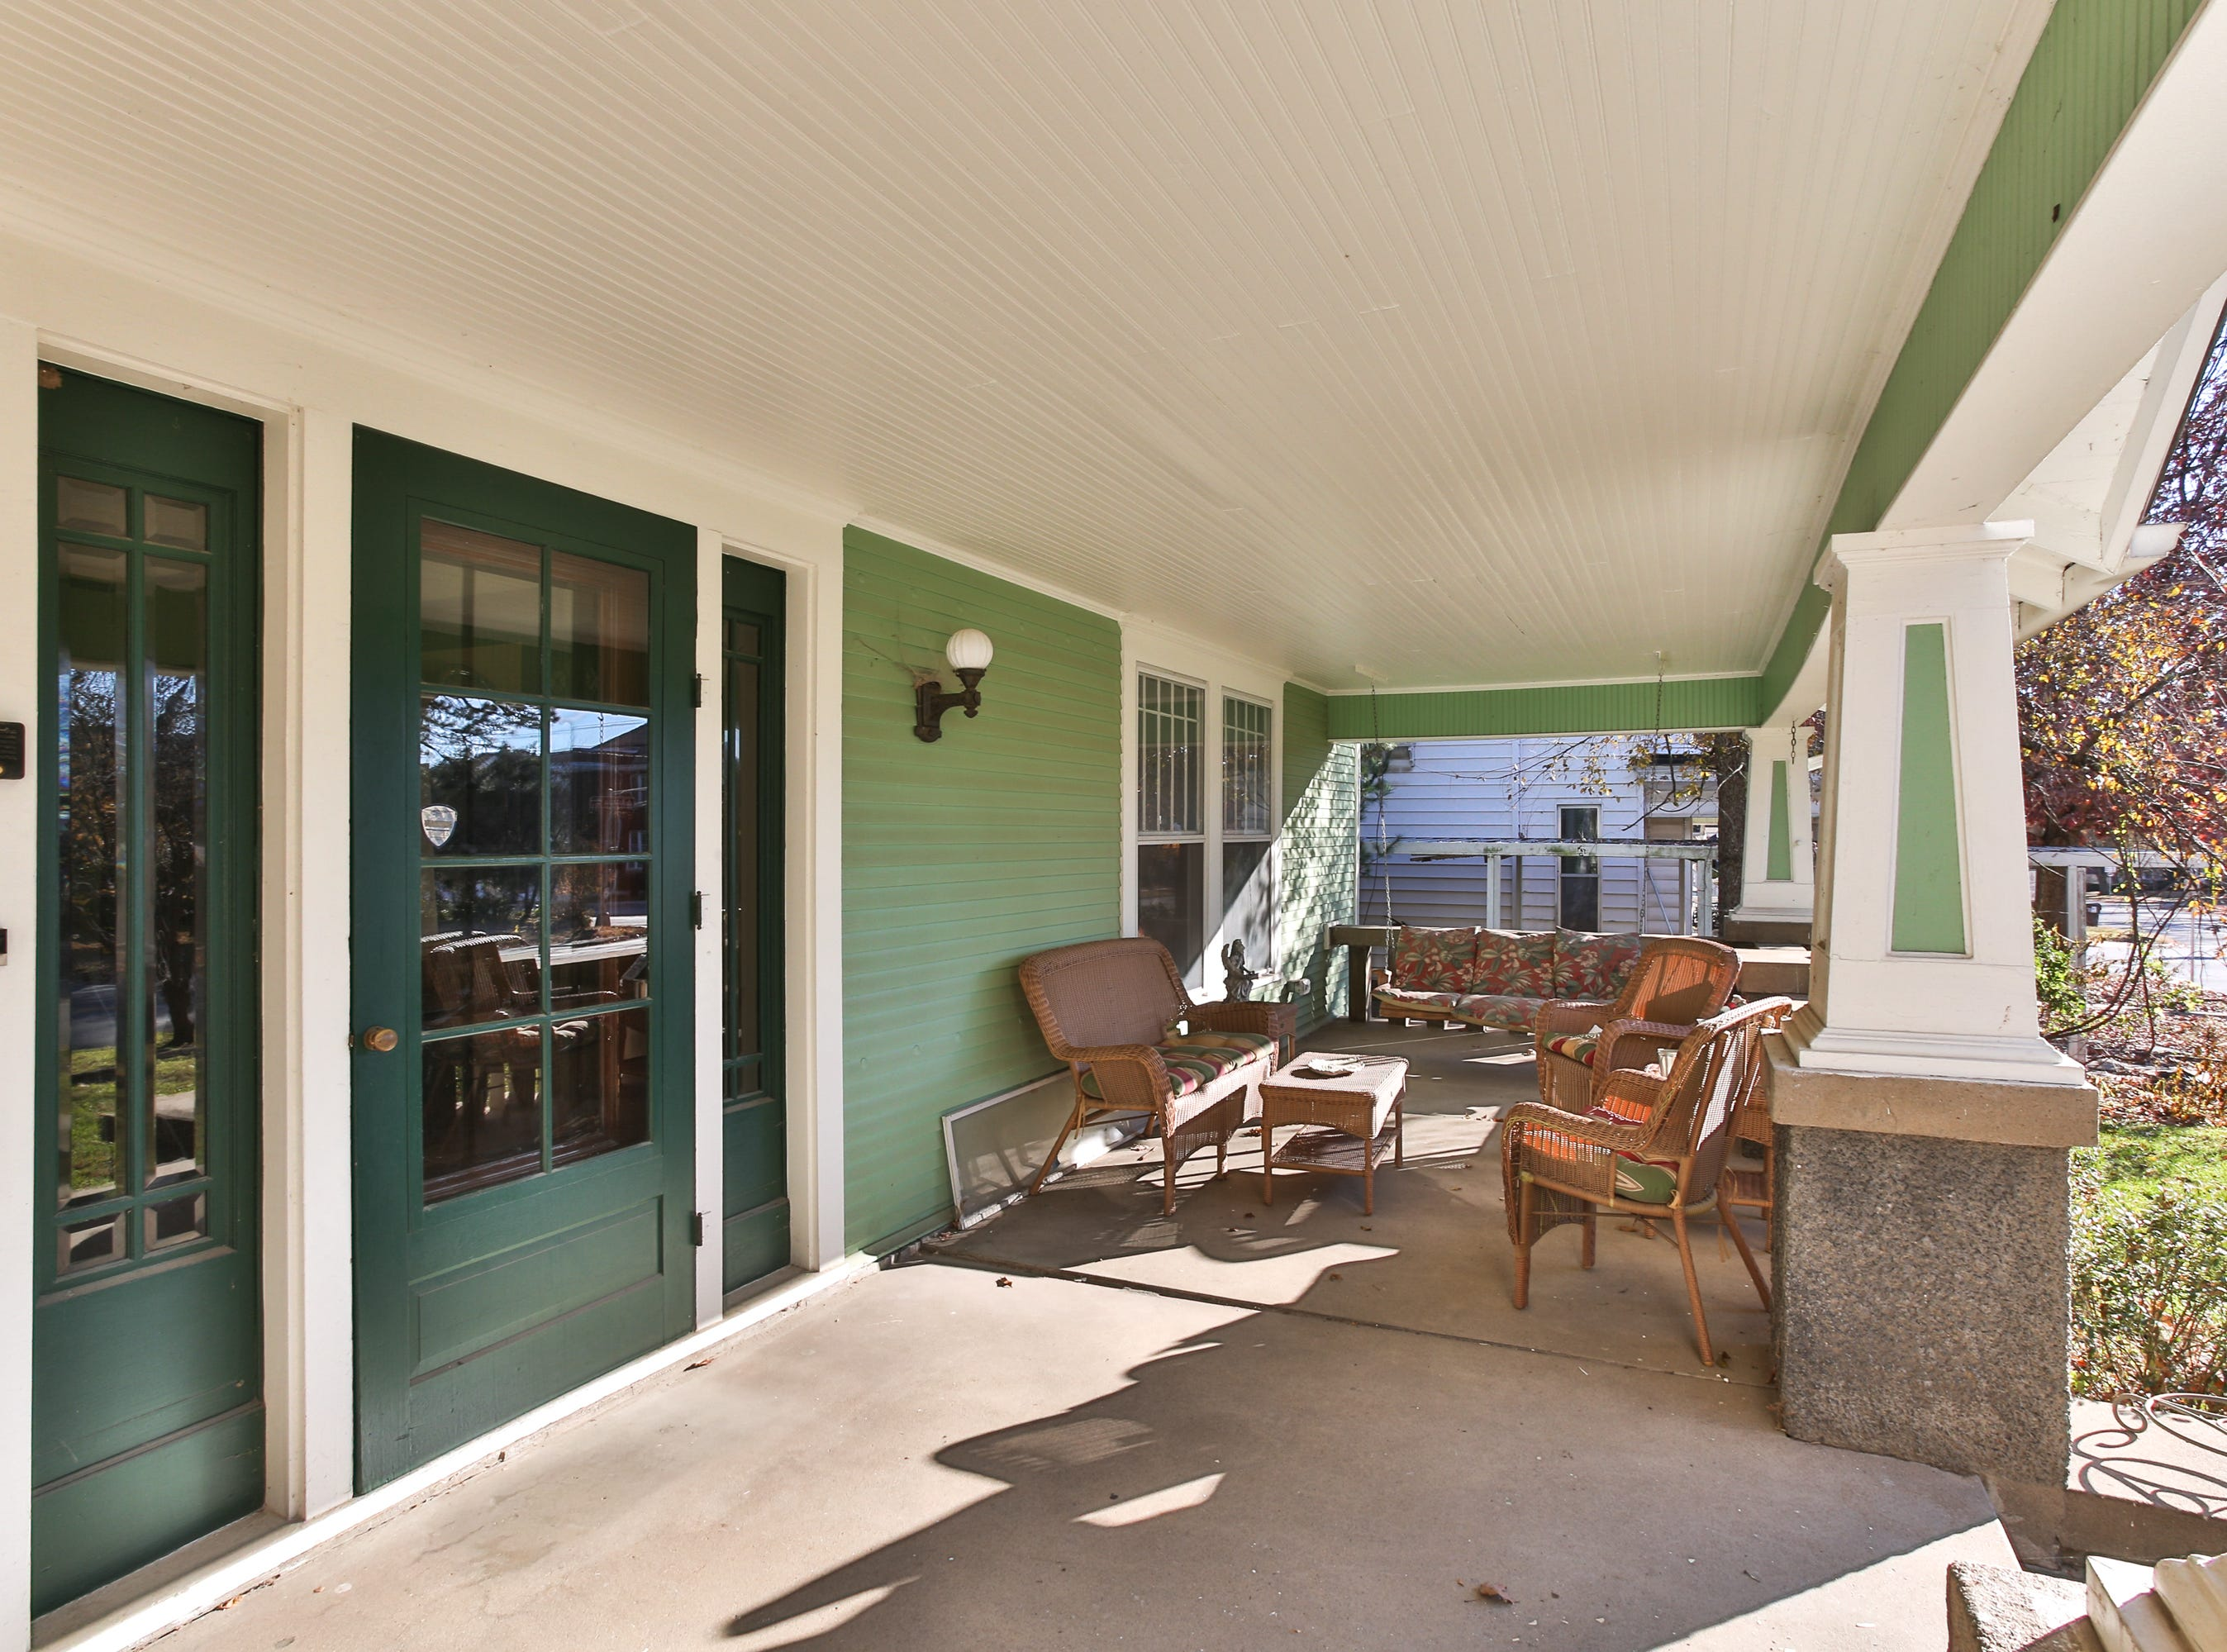 A wide, sun-filled porch greets guests to Cheryl Braswell's home in the heart of Springfield.